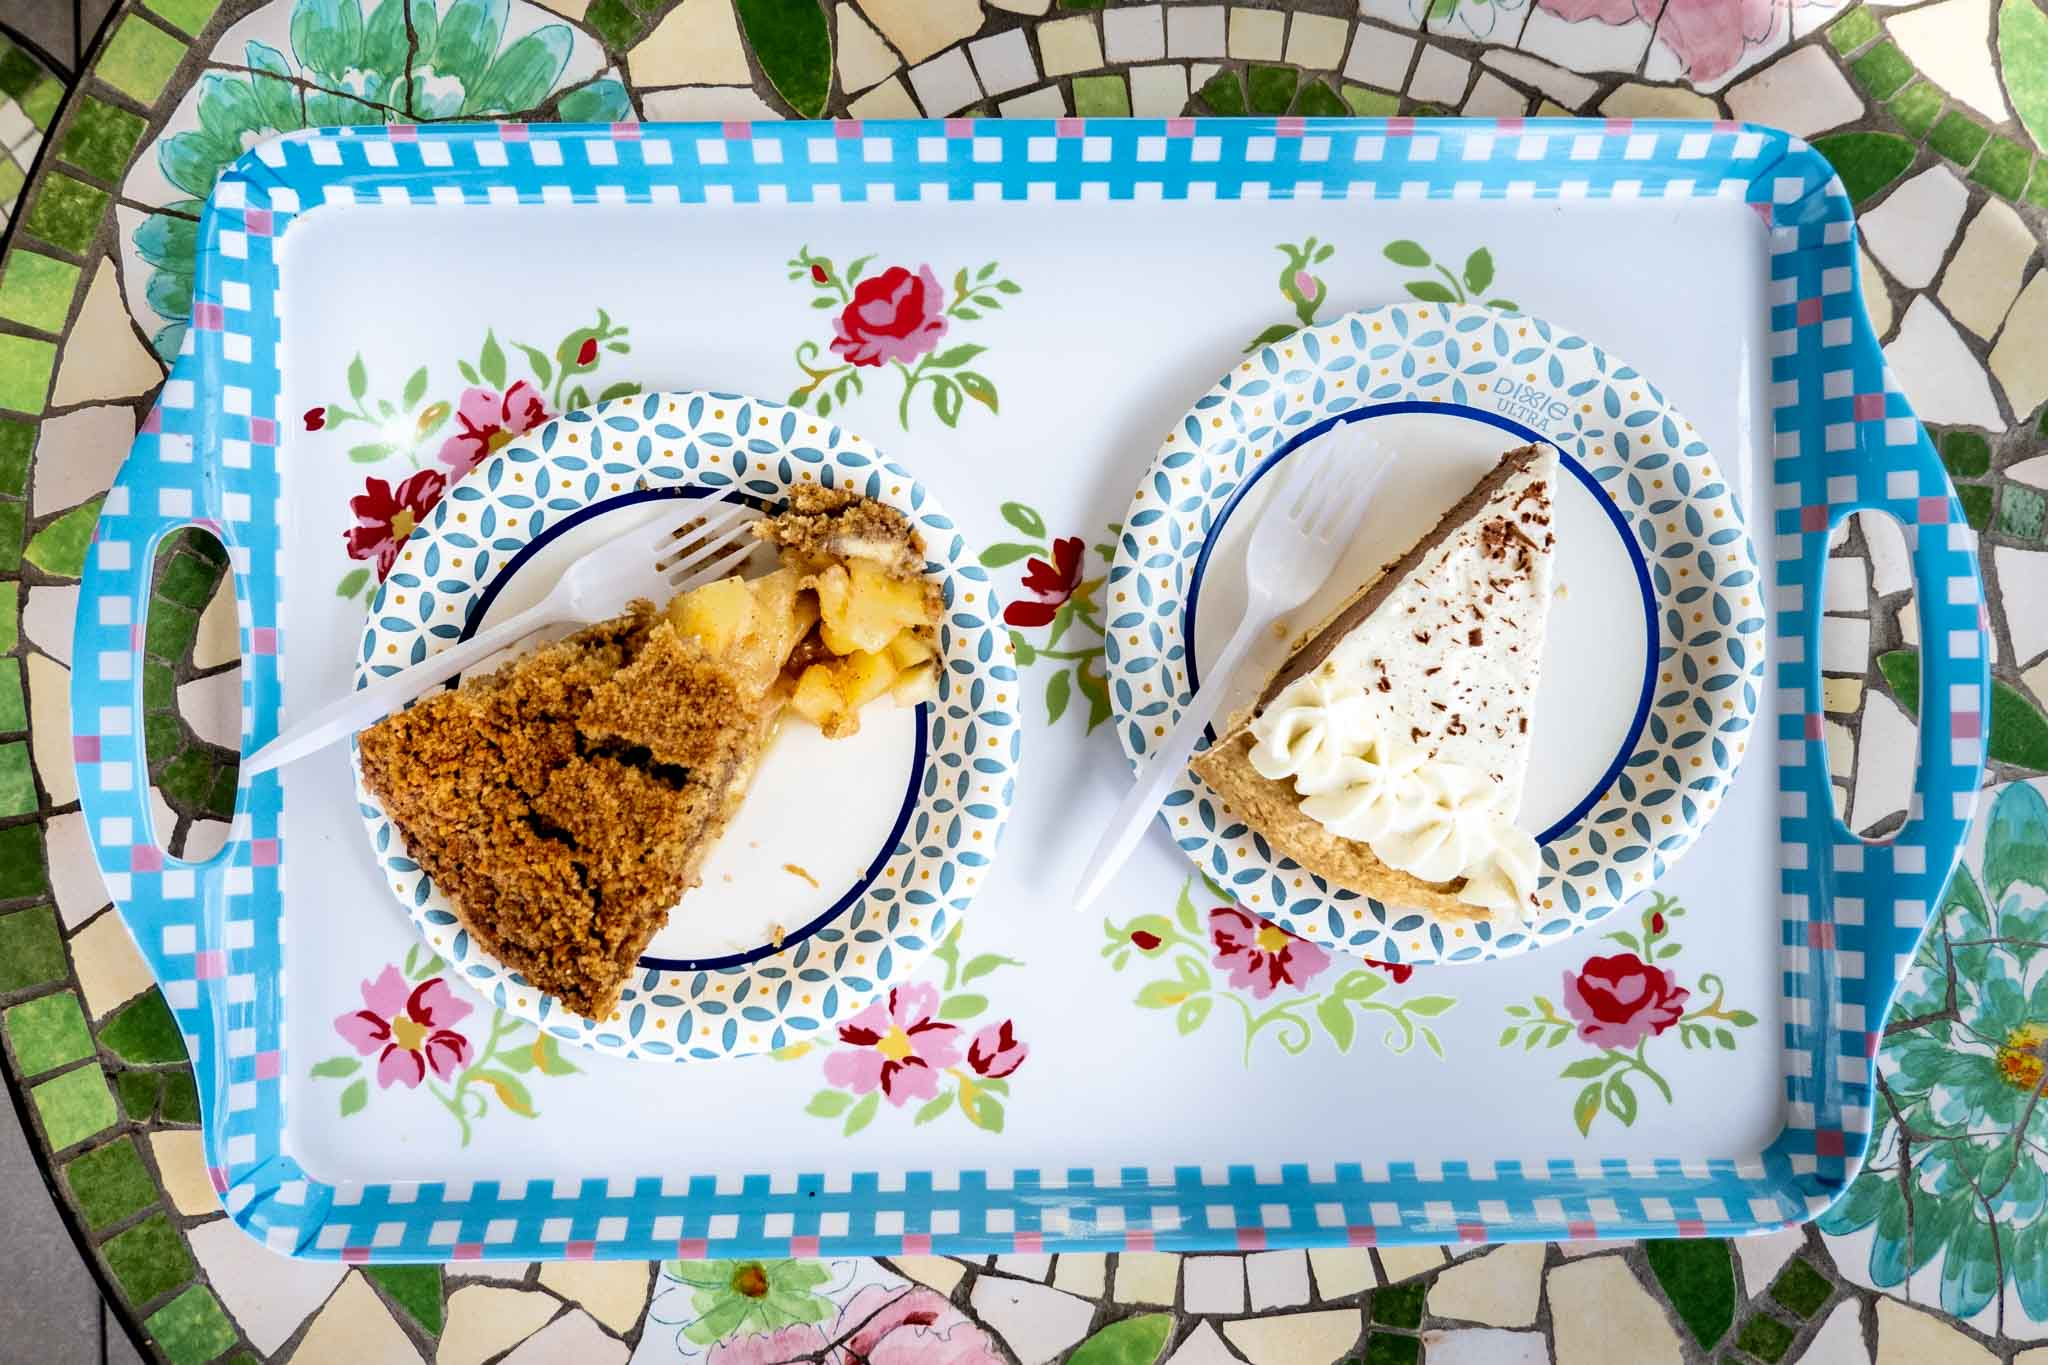 Two slices of pie on a colorful tray